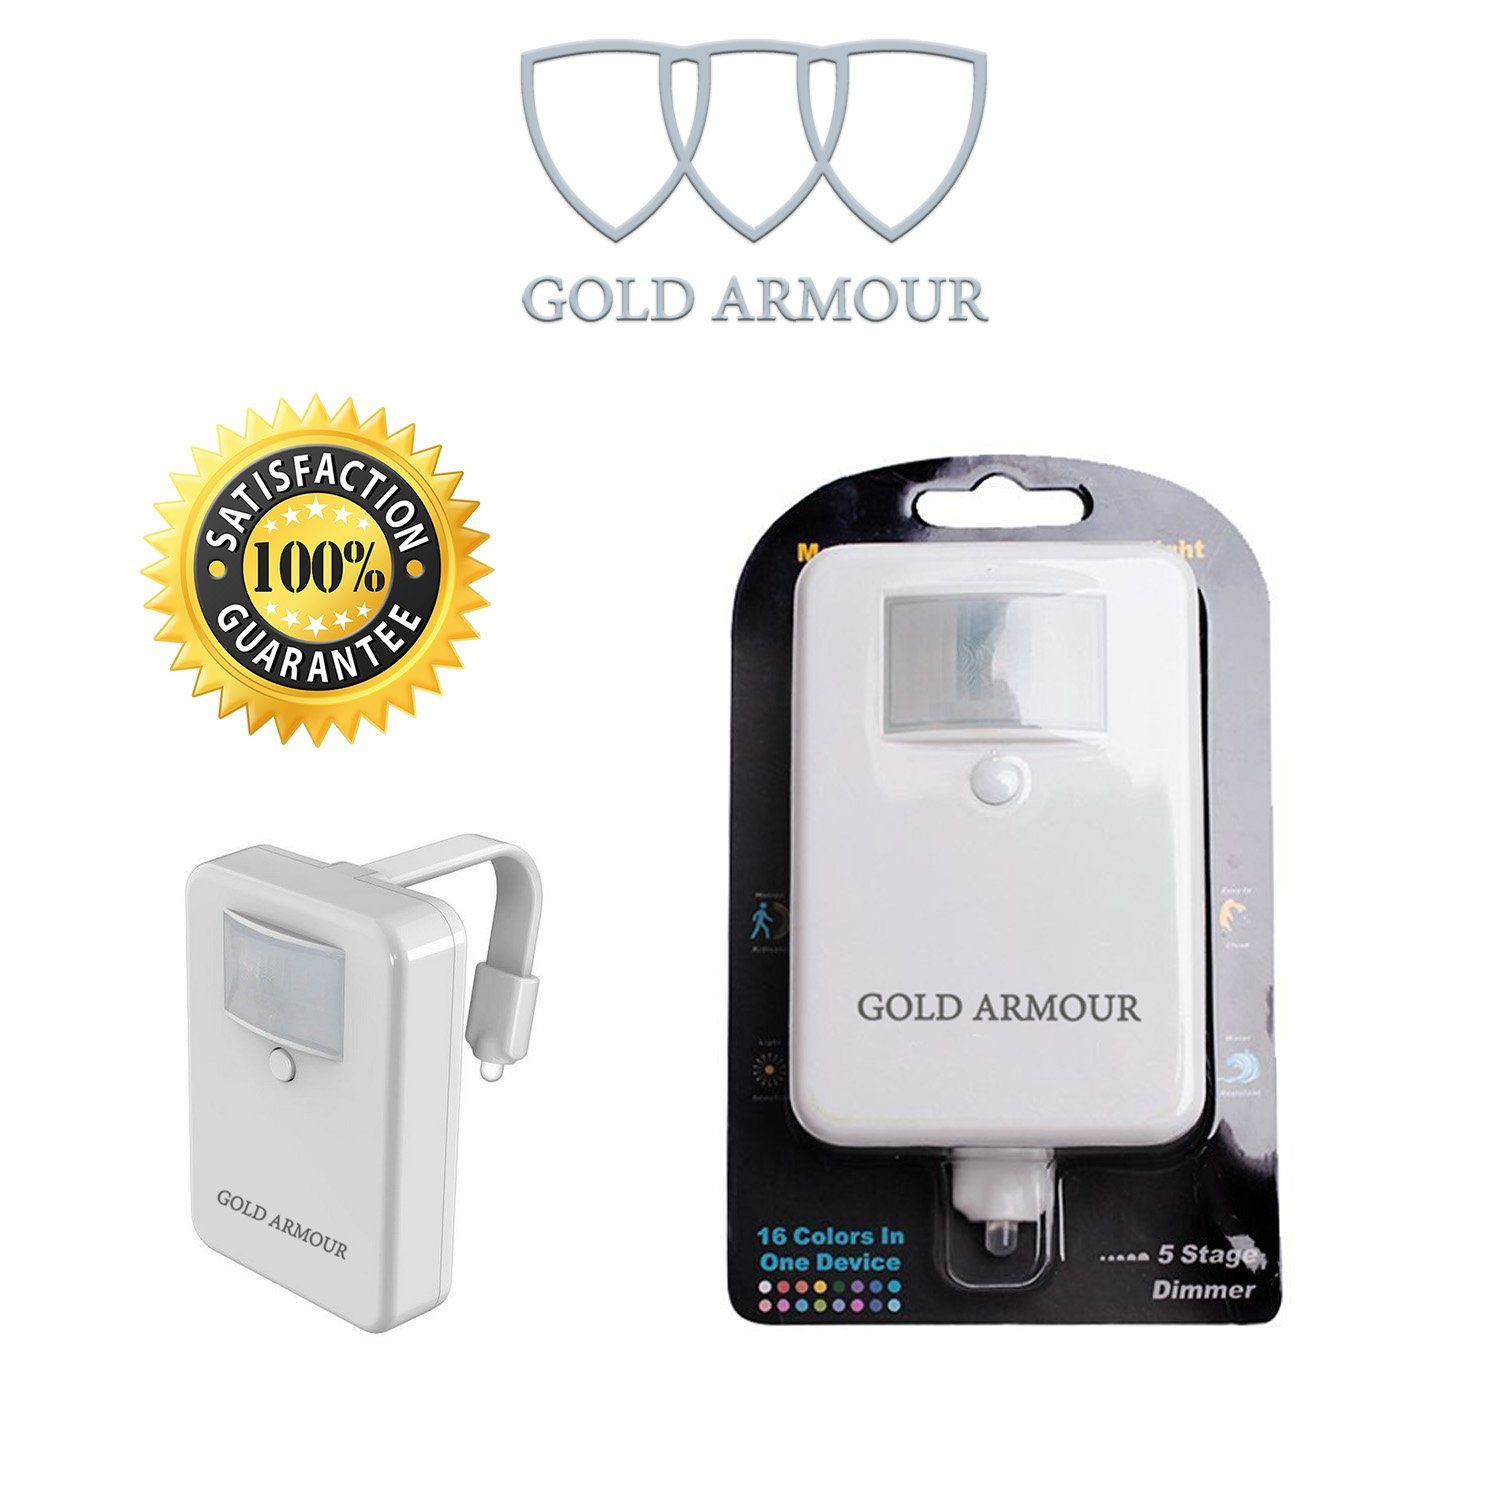 Toilet Night Light Gold Armour 16 Color Motion Sensor Colour They Emit During Normal Operation A Basic Can Be Led 5 Stage Dimmer Detection Great For Potty Training